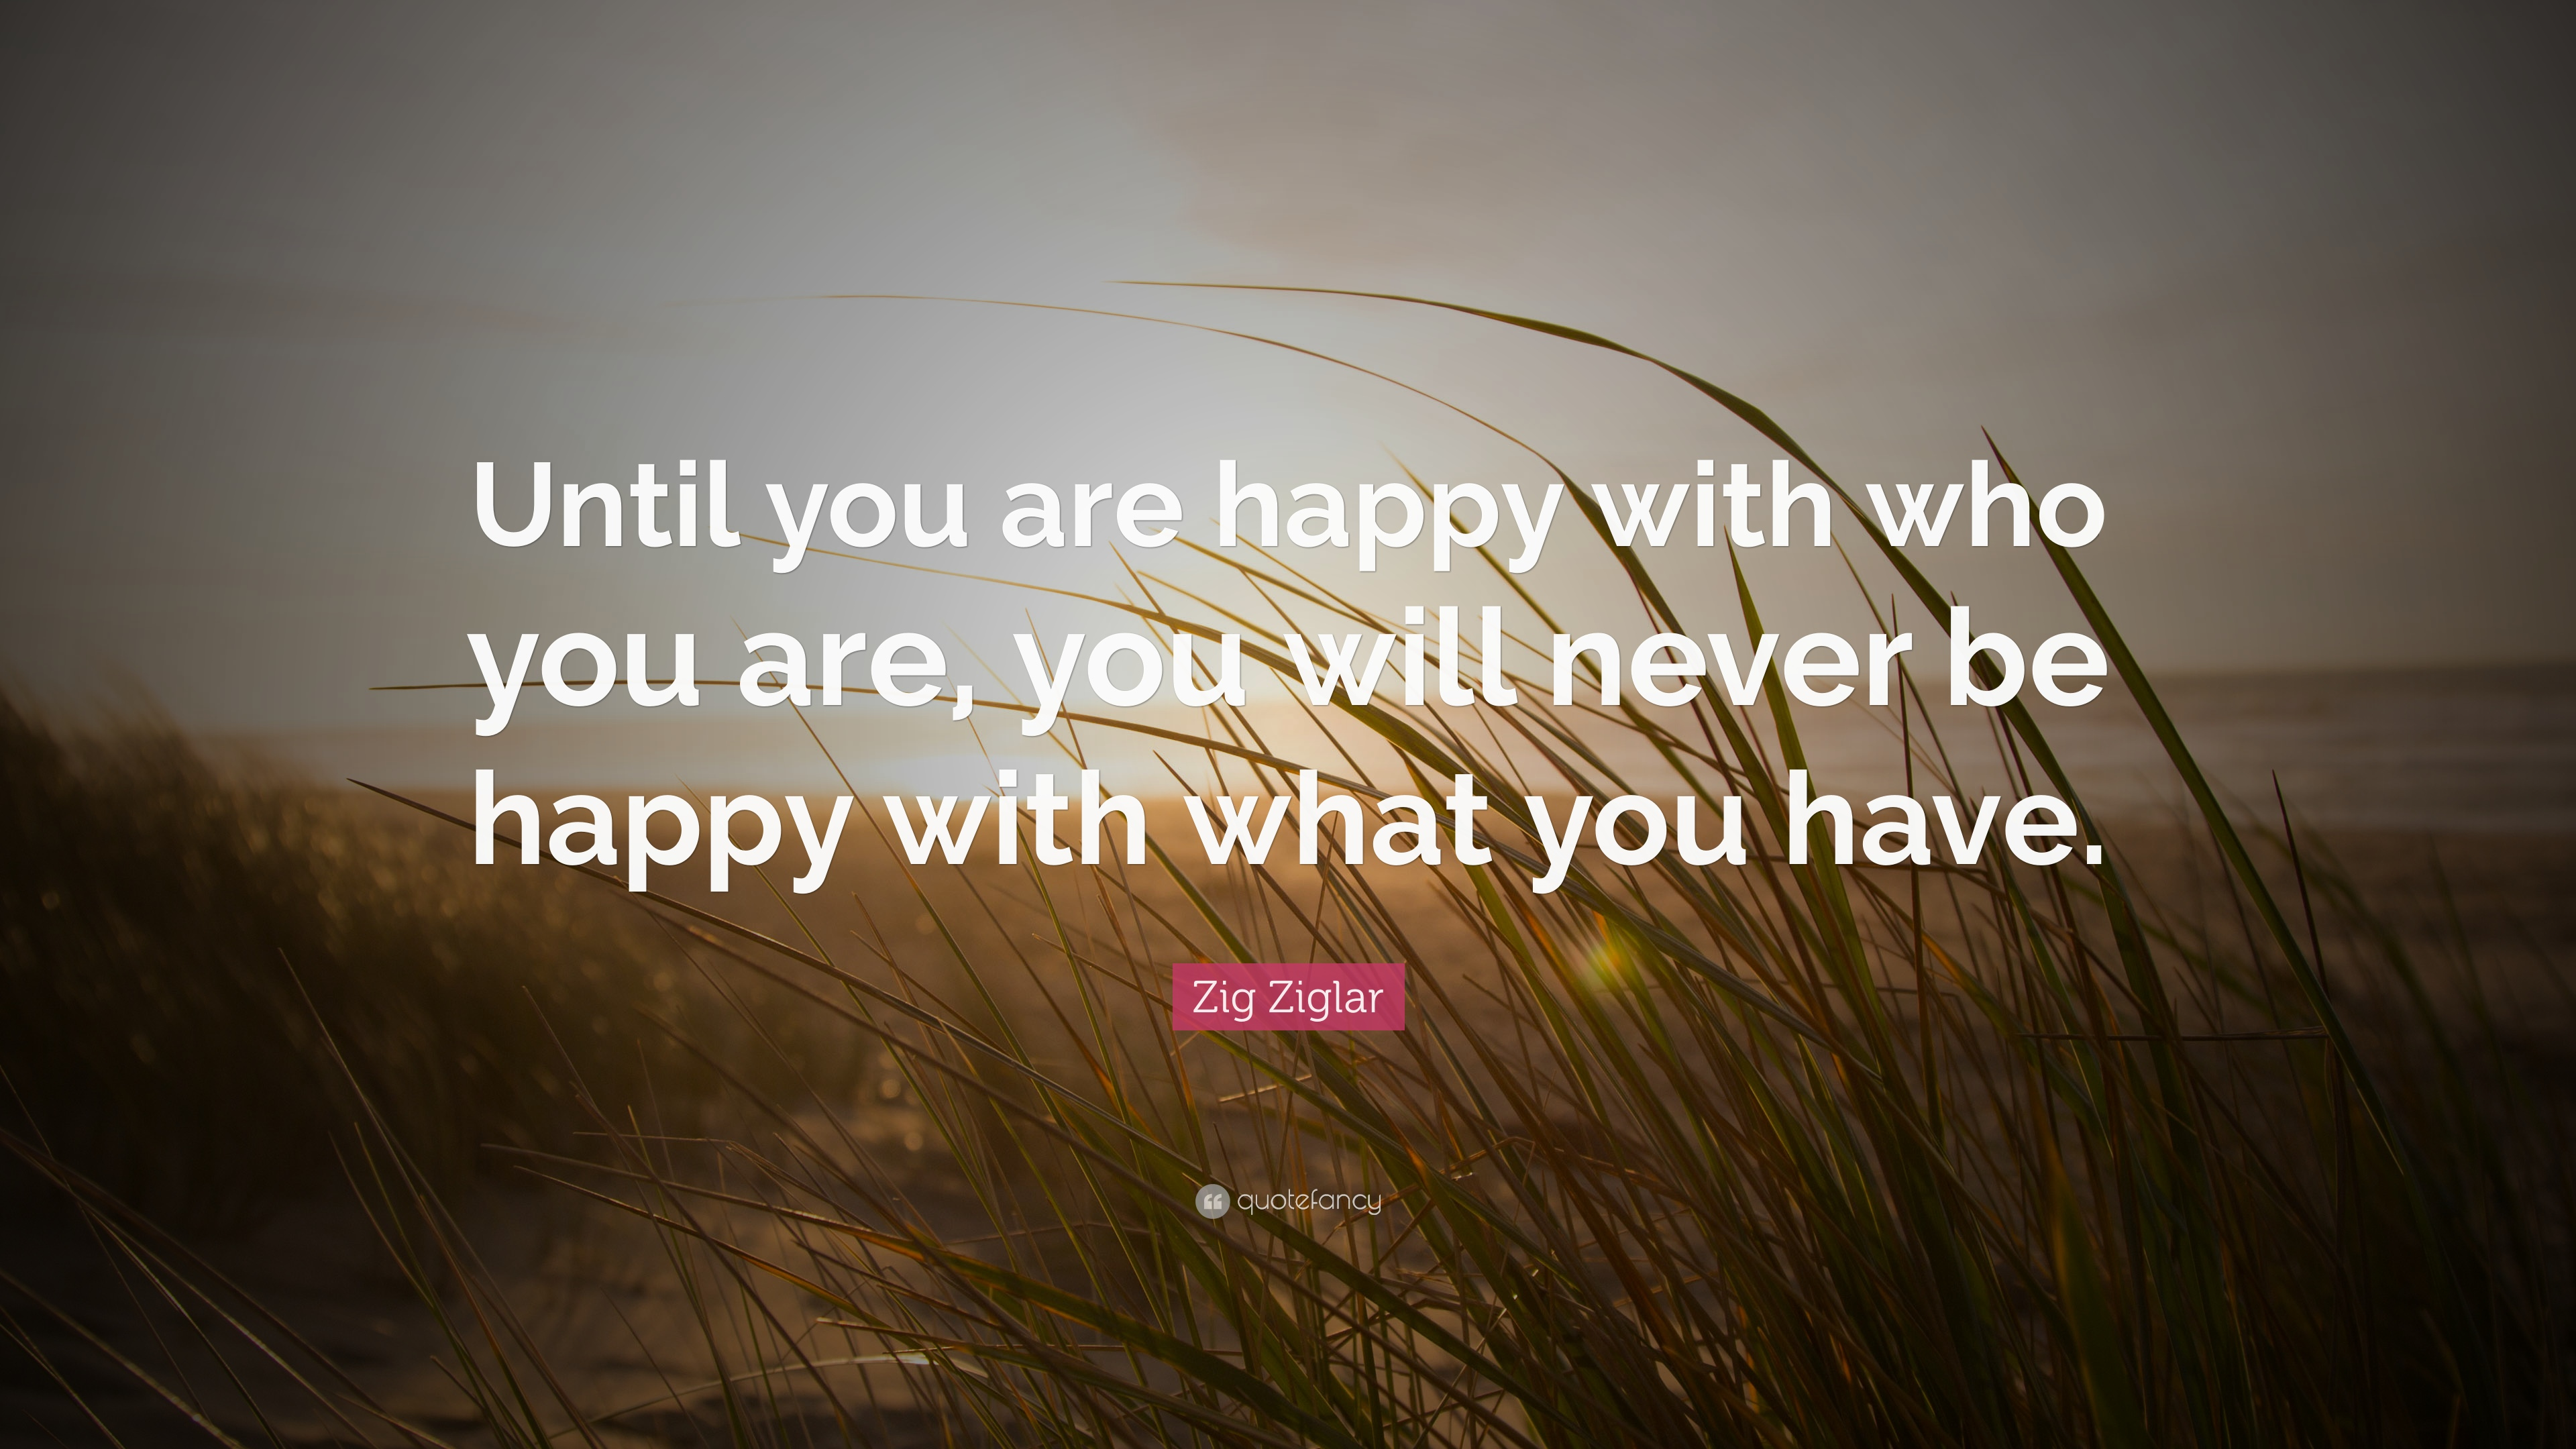 Best Happy Quotation For You: Happiness Quotes (100 Wallpapers)